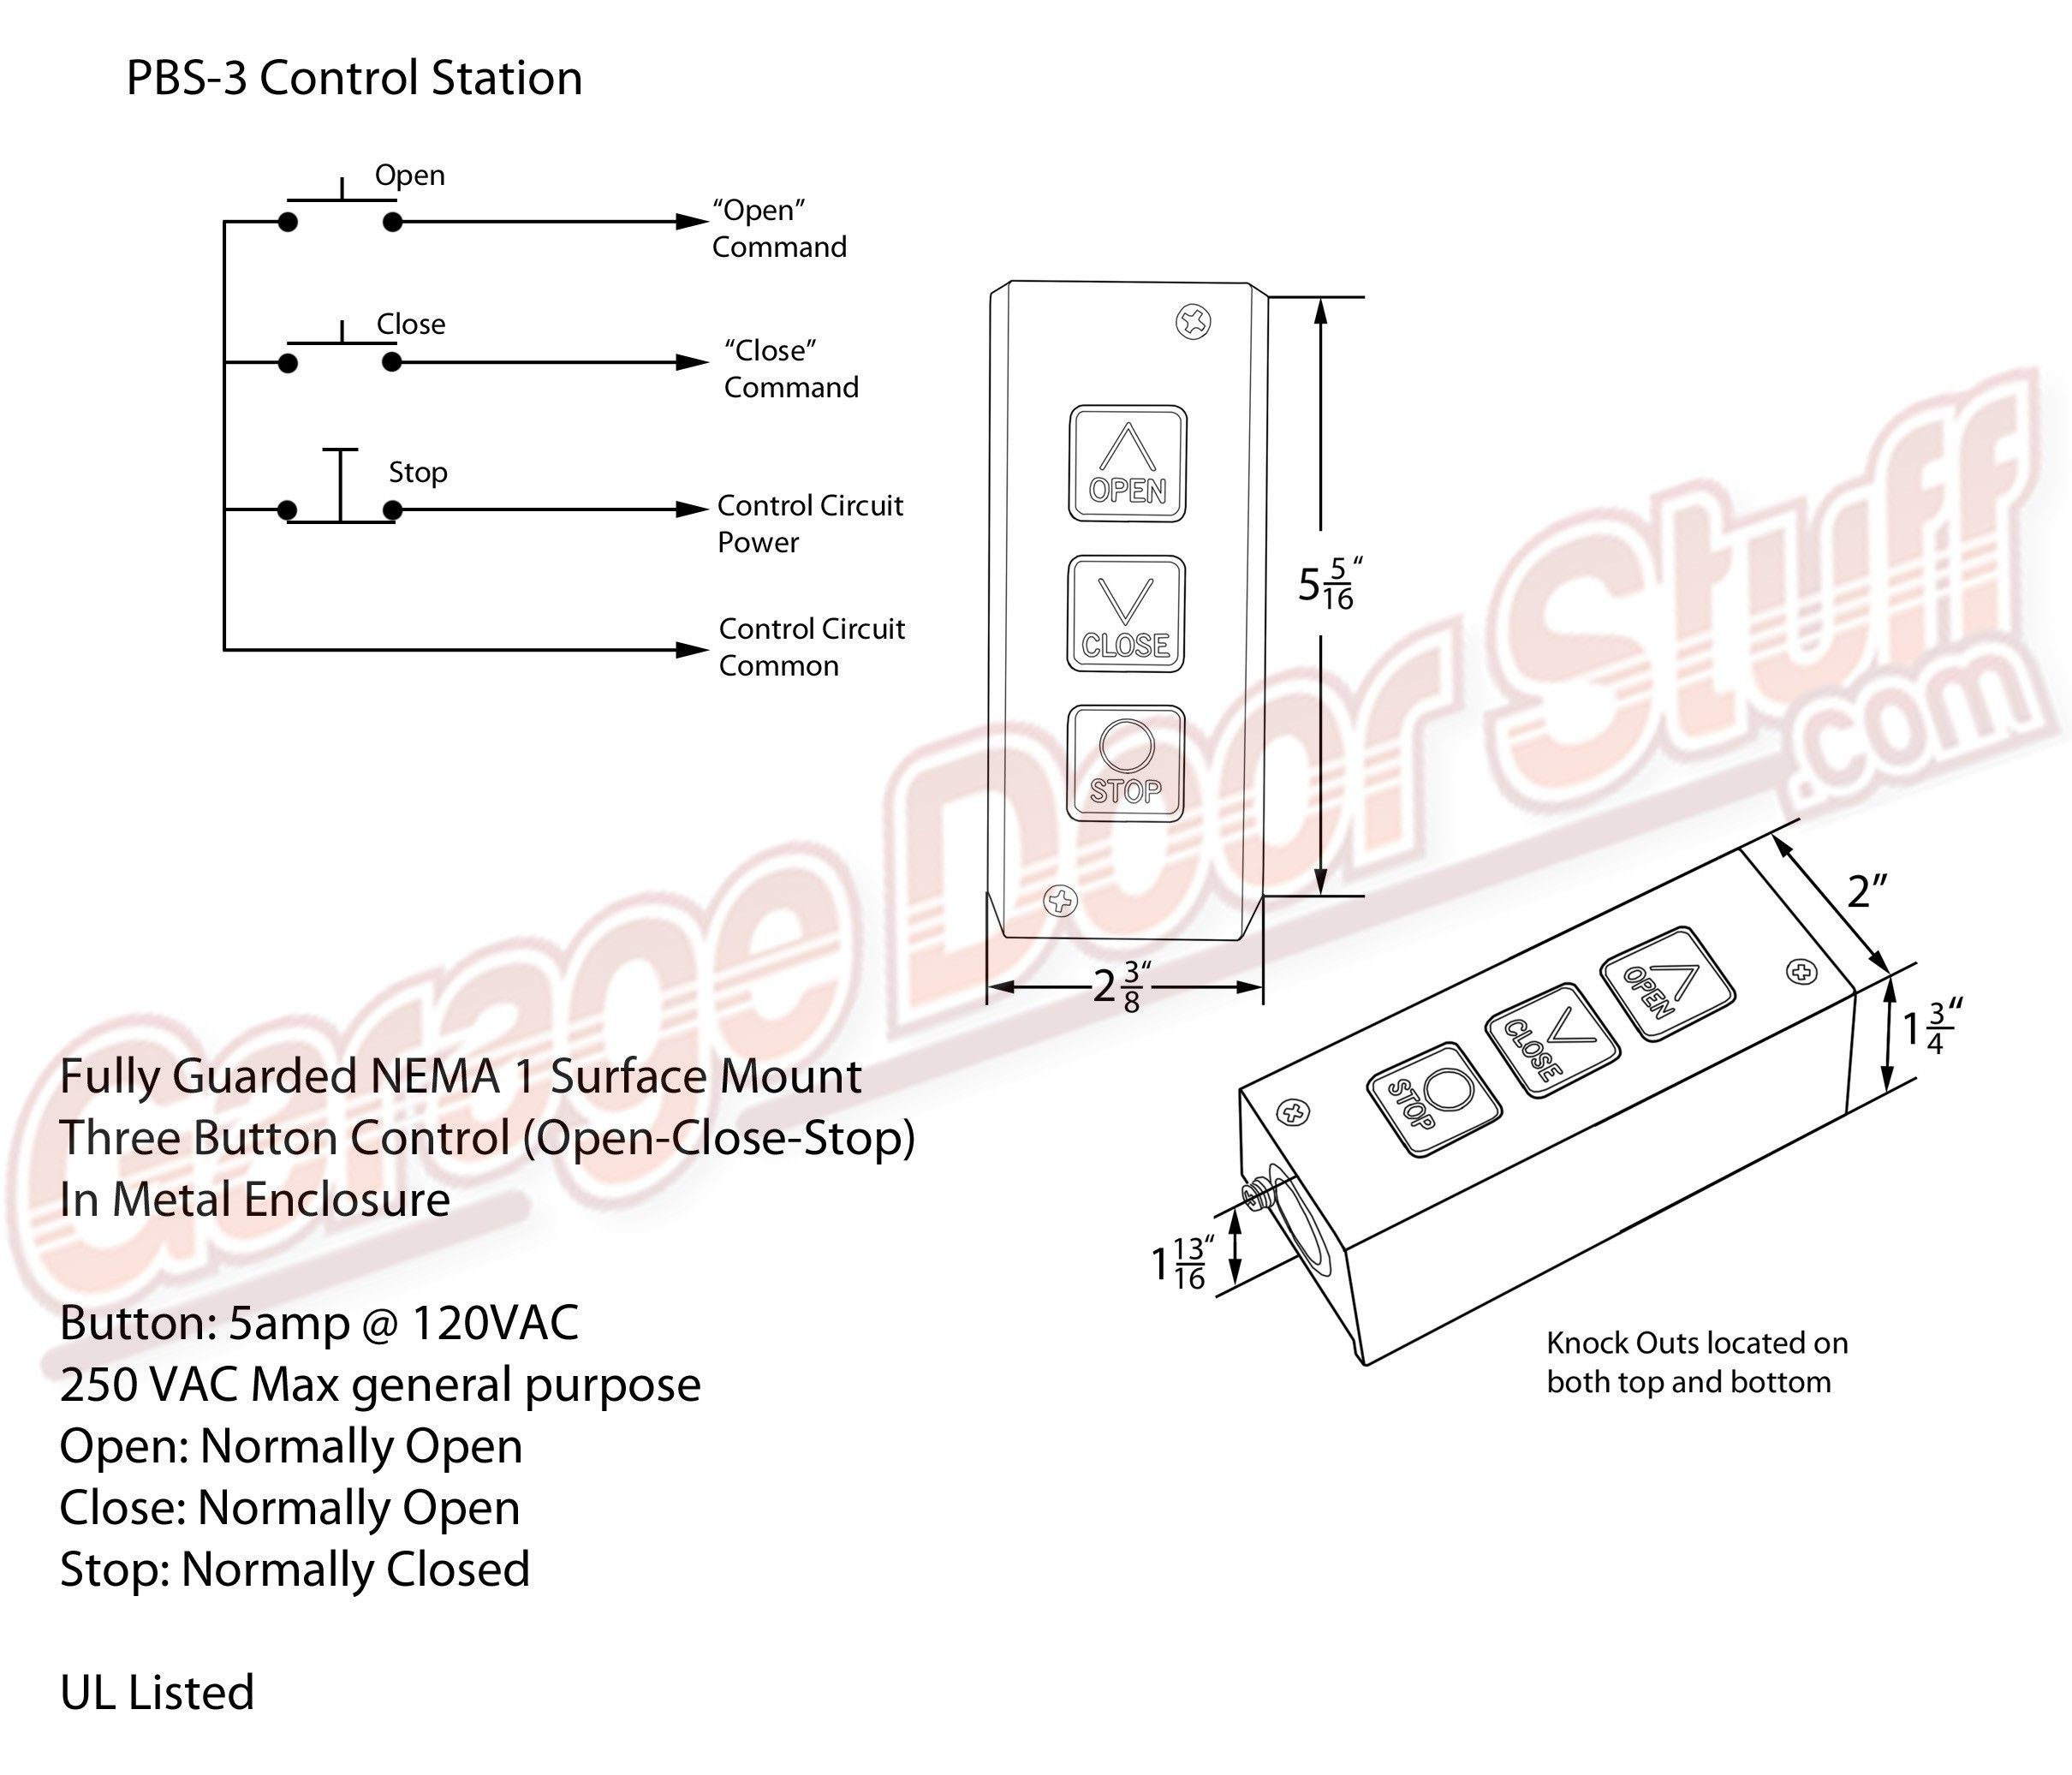 Unique Wiring Diagram Garage Door Diagram Diagramsample Diagramtemplate Wiringdiagram Diagramchart Garage Doors Garage Door Opener Electric Garage Doors